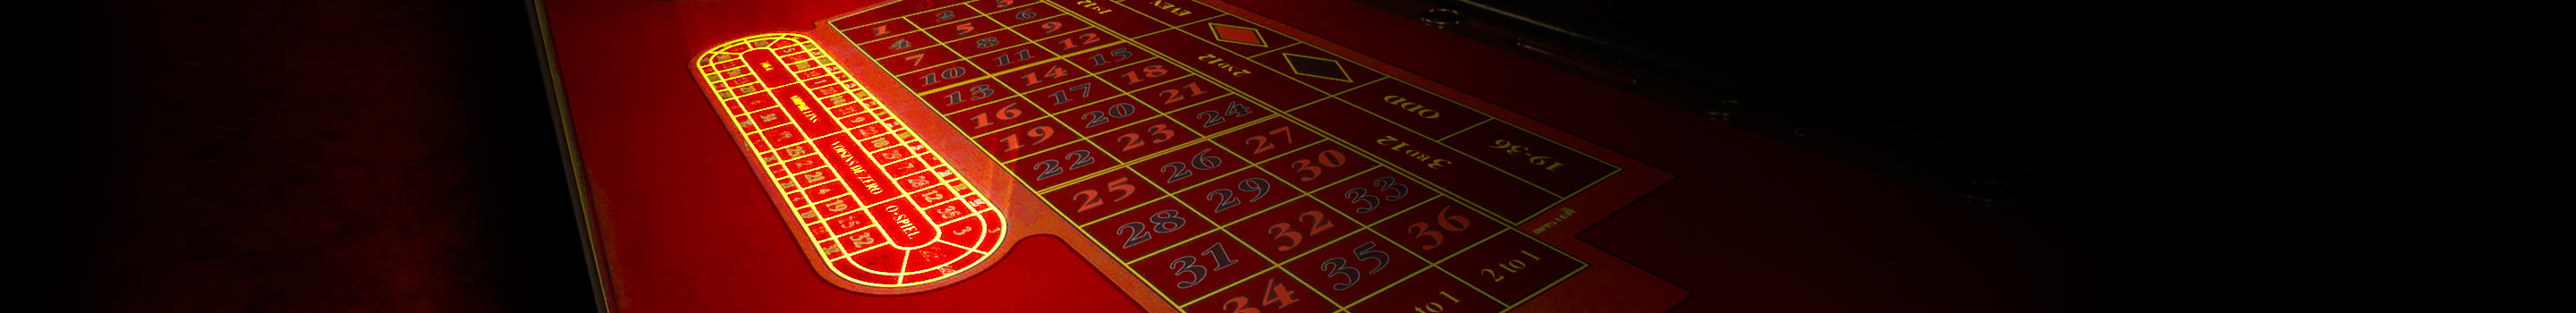 Special bets on the racetrack in roulette